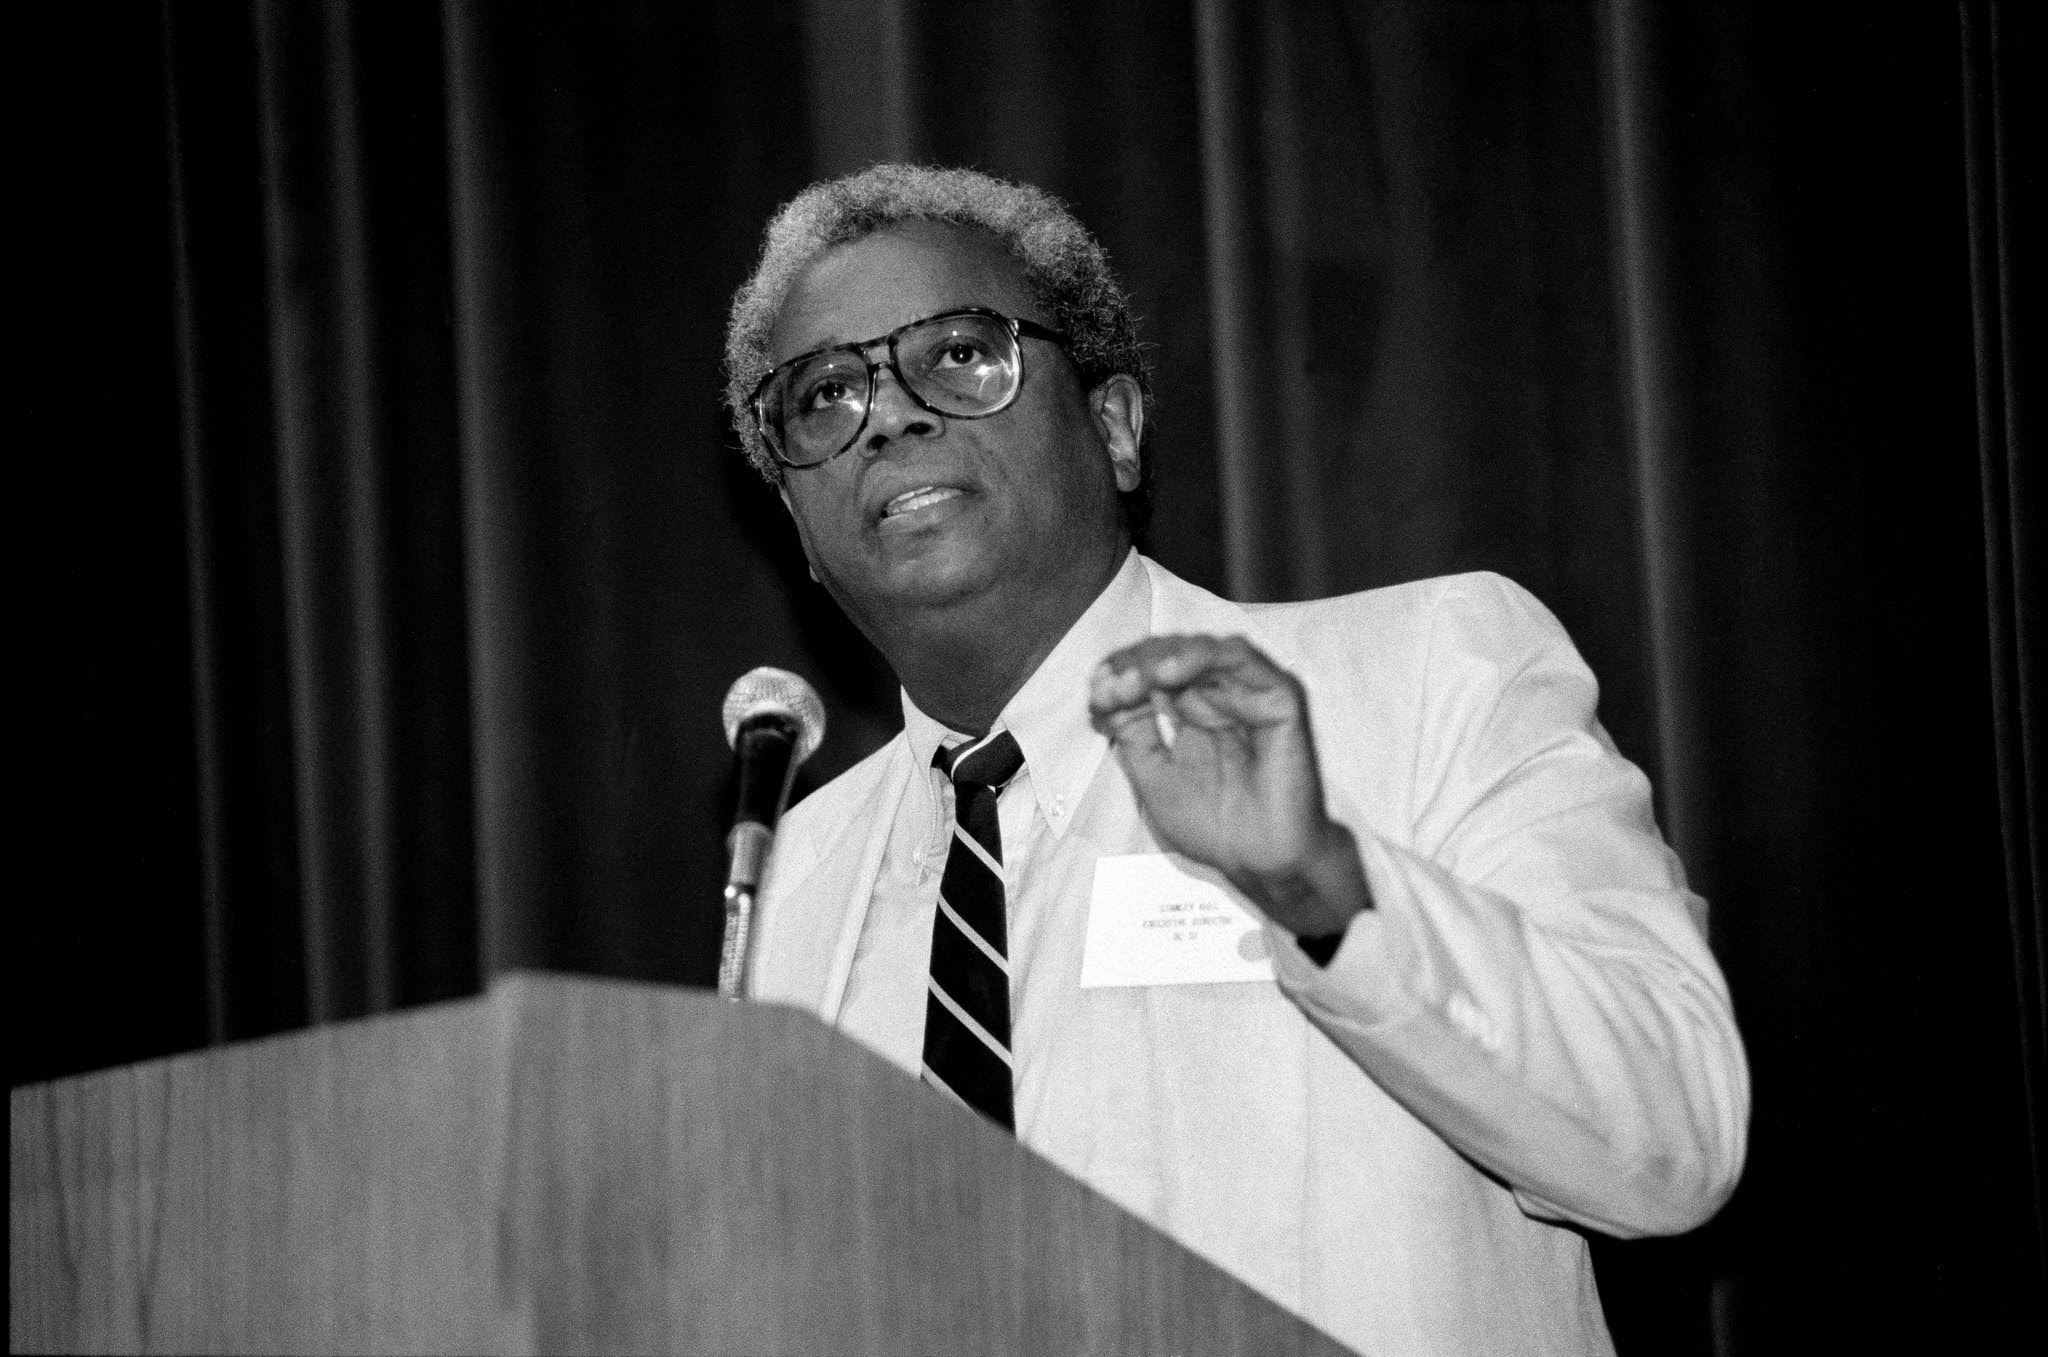 Stanley Hill Sr., the former executive director of DC 37 died last week. Photo courtesy of Leroy Comrie.